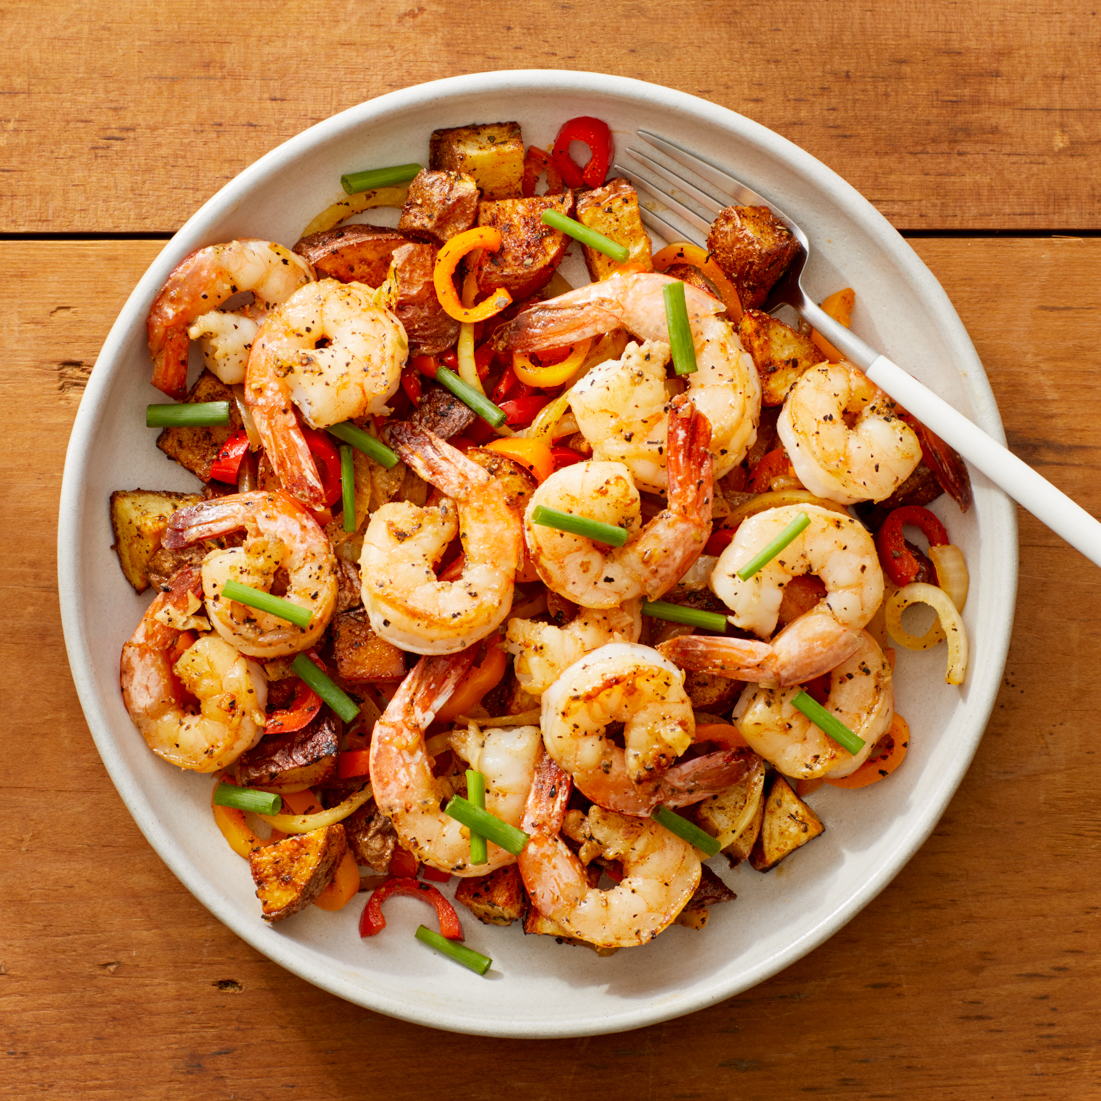 Weight Watchers Partners with Blue Apron, Introduces New Tilapia and Shrimp Dishes